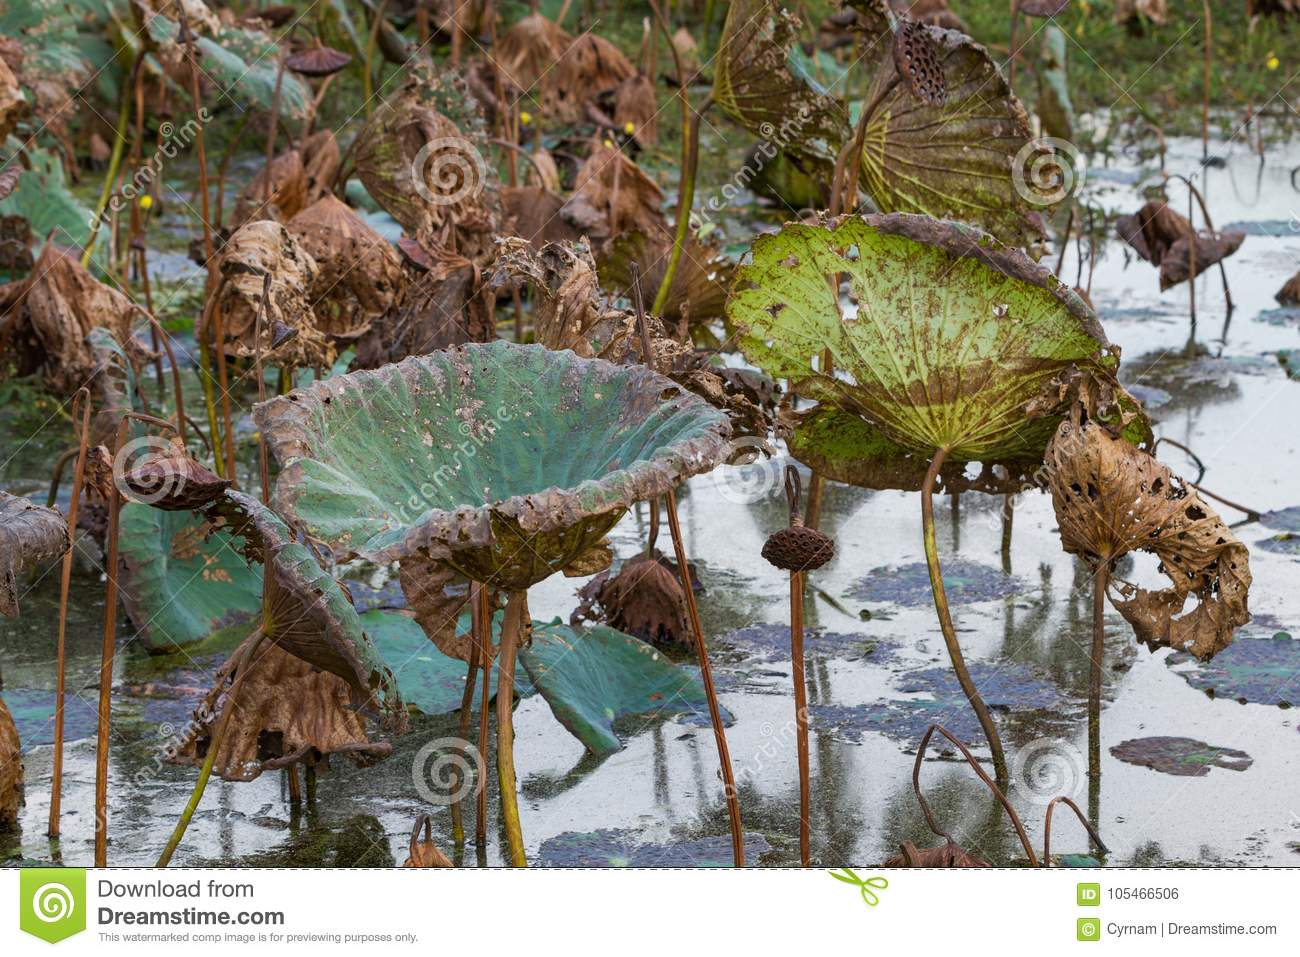 Waterlily pond dry and dead water lilies dead lotus flower waterlily pond dry and dead water lilies dead lotus flower beautiful colored background izmirmasajfo